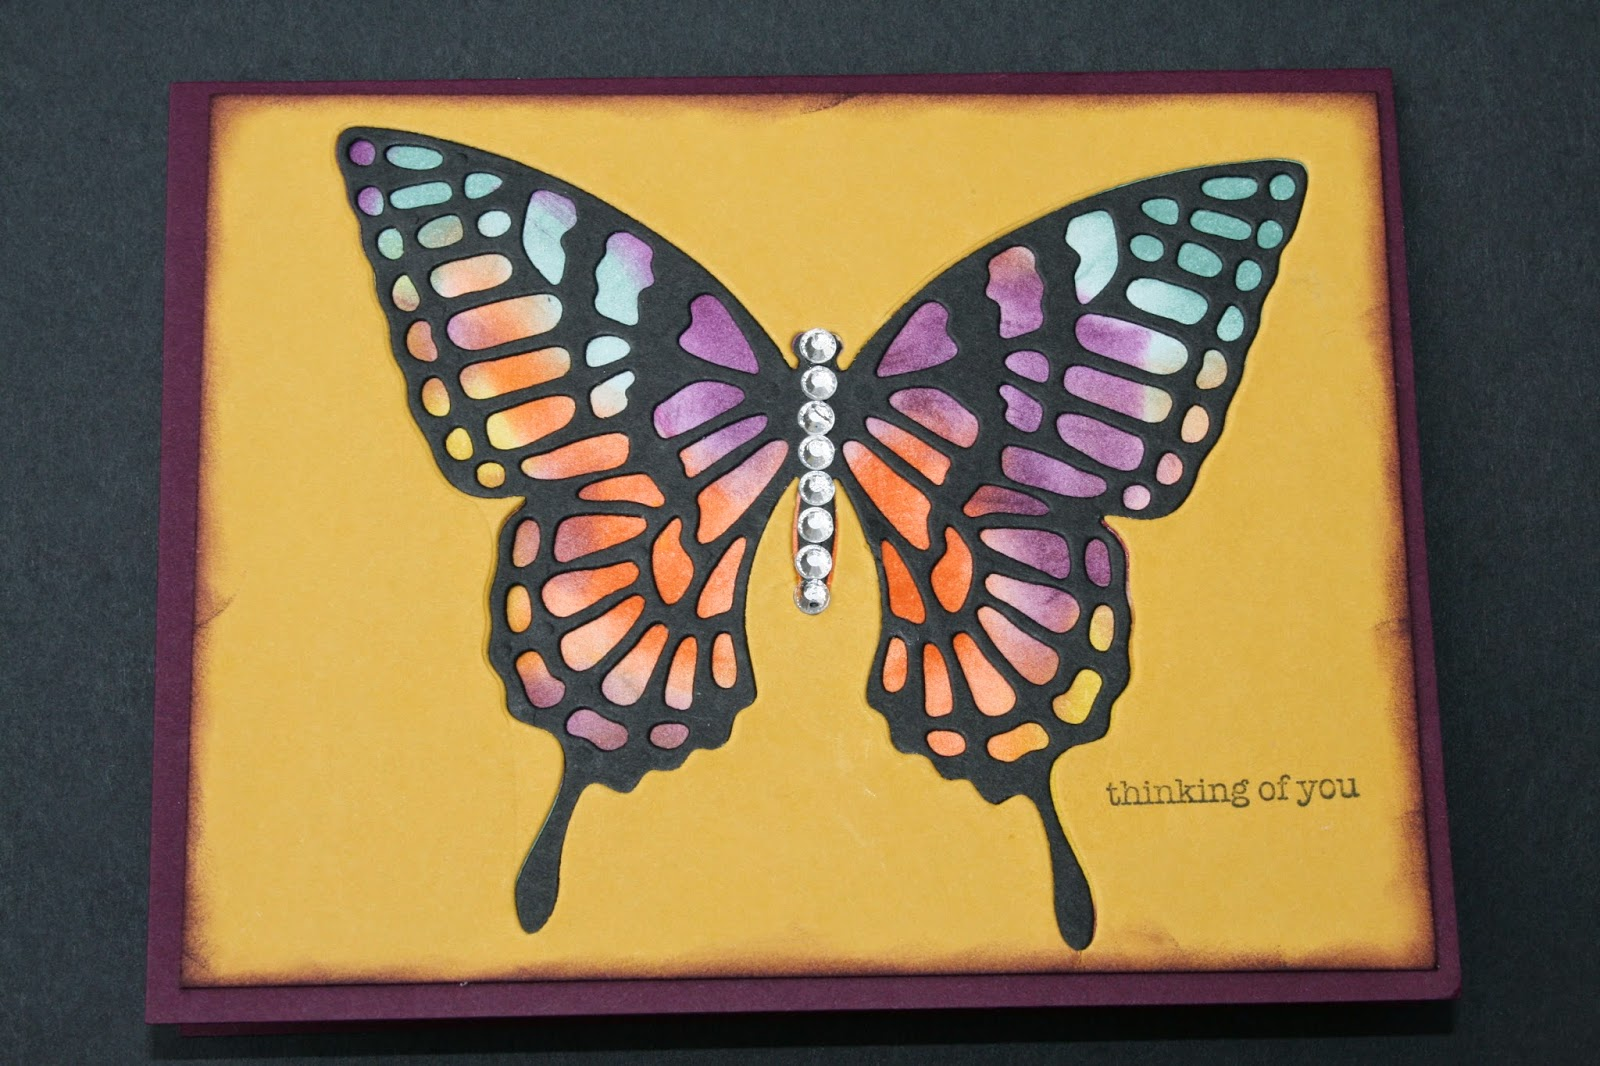 Thinking of You using Butterfly and Inlay technique